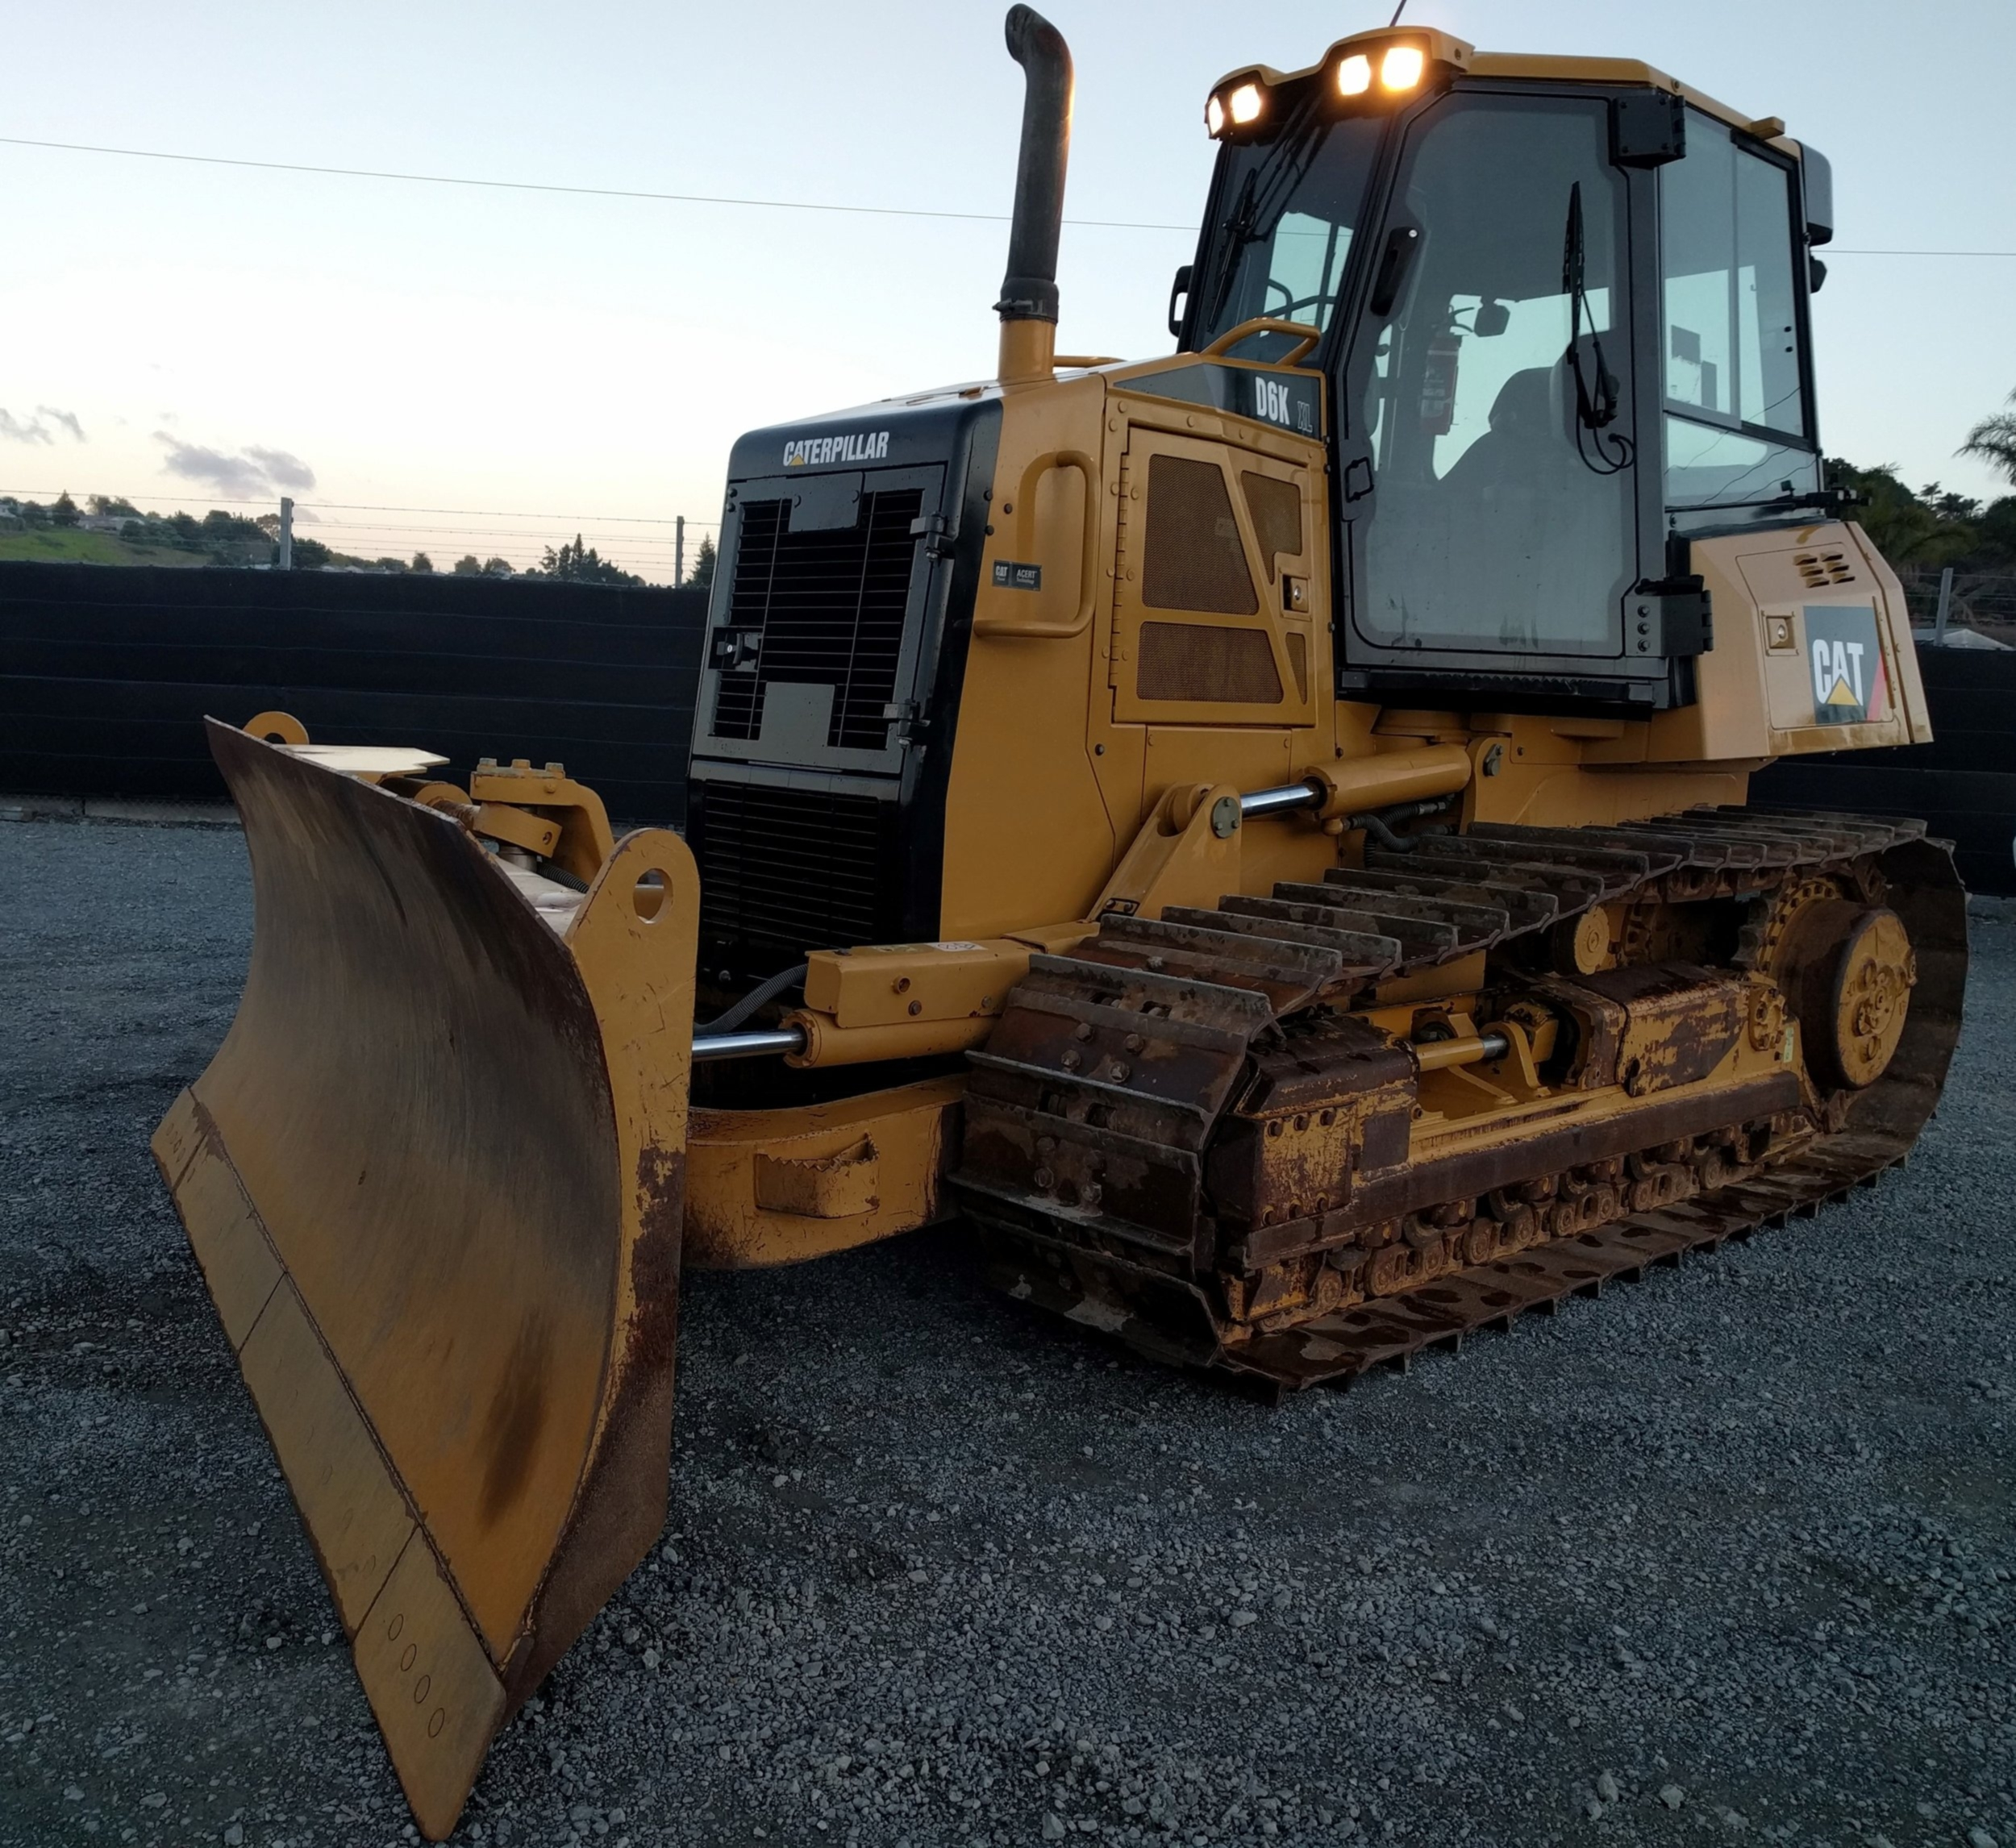 2009 CAT D6KXL dozer with 6-way PAT blade